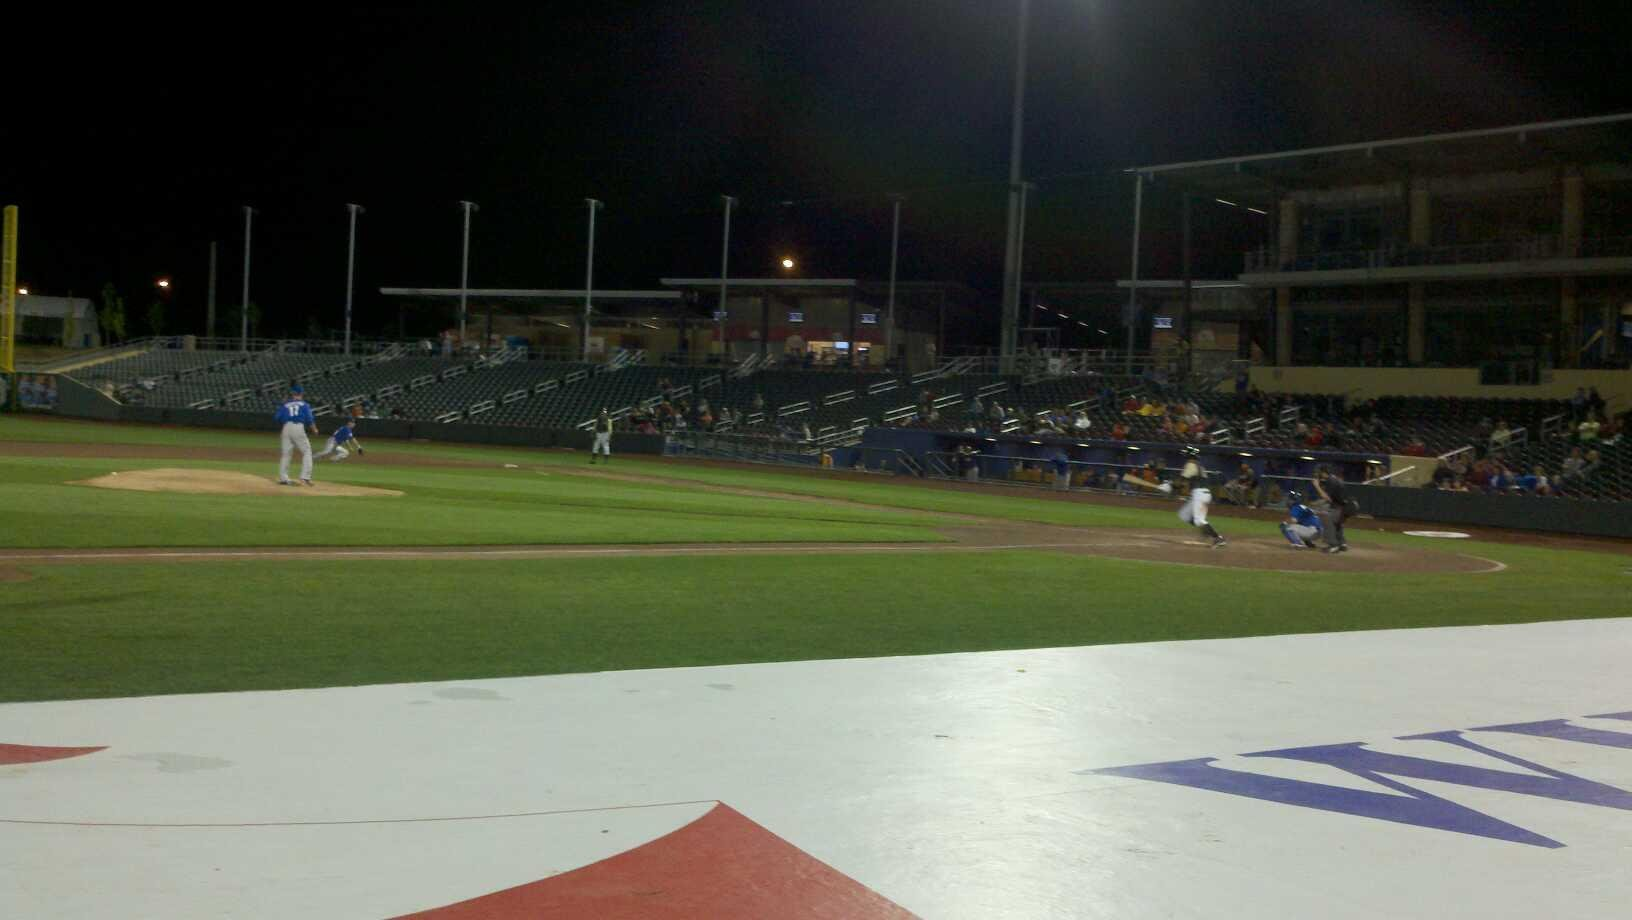 Werner Park Section 118 Row 6 Seat 8